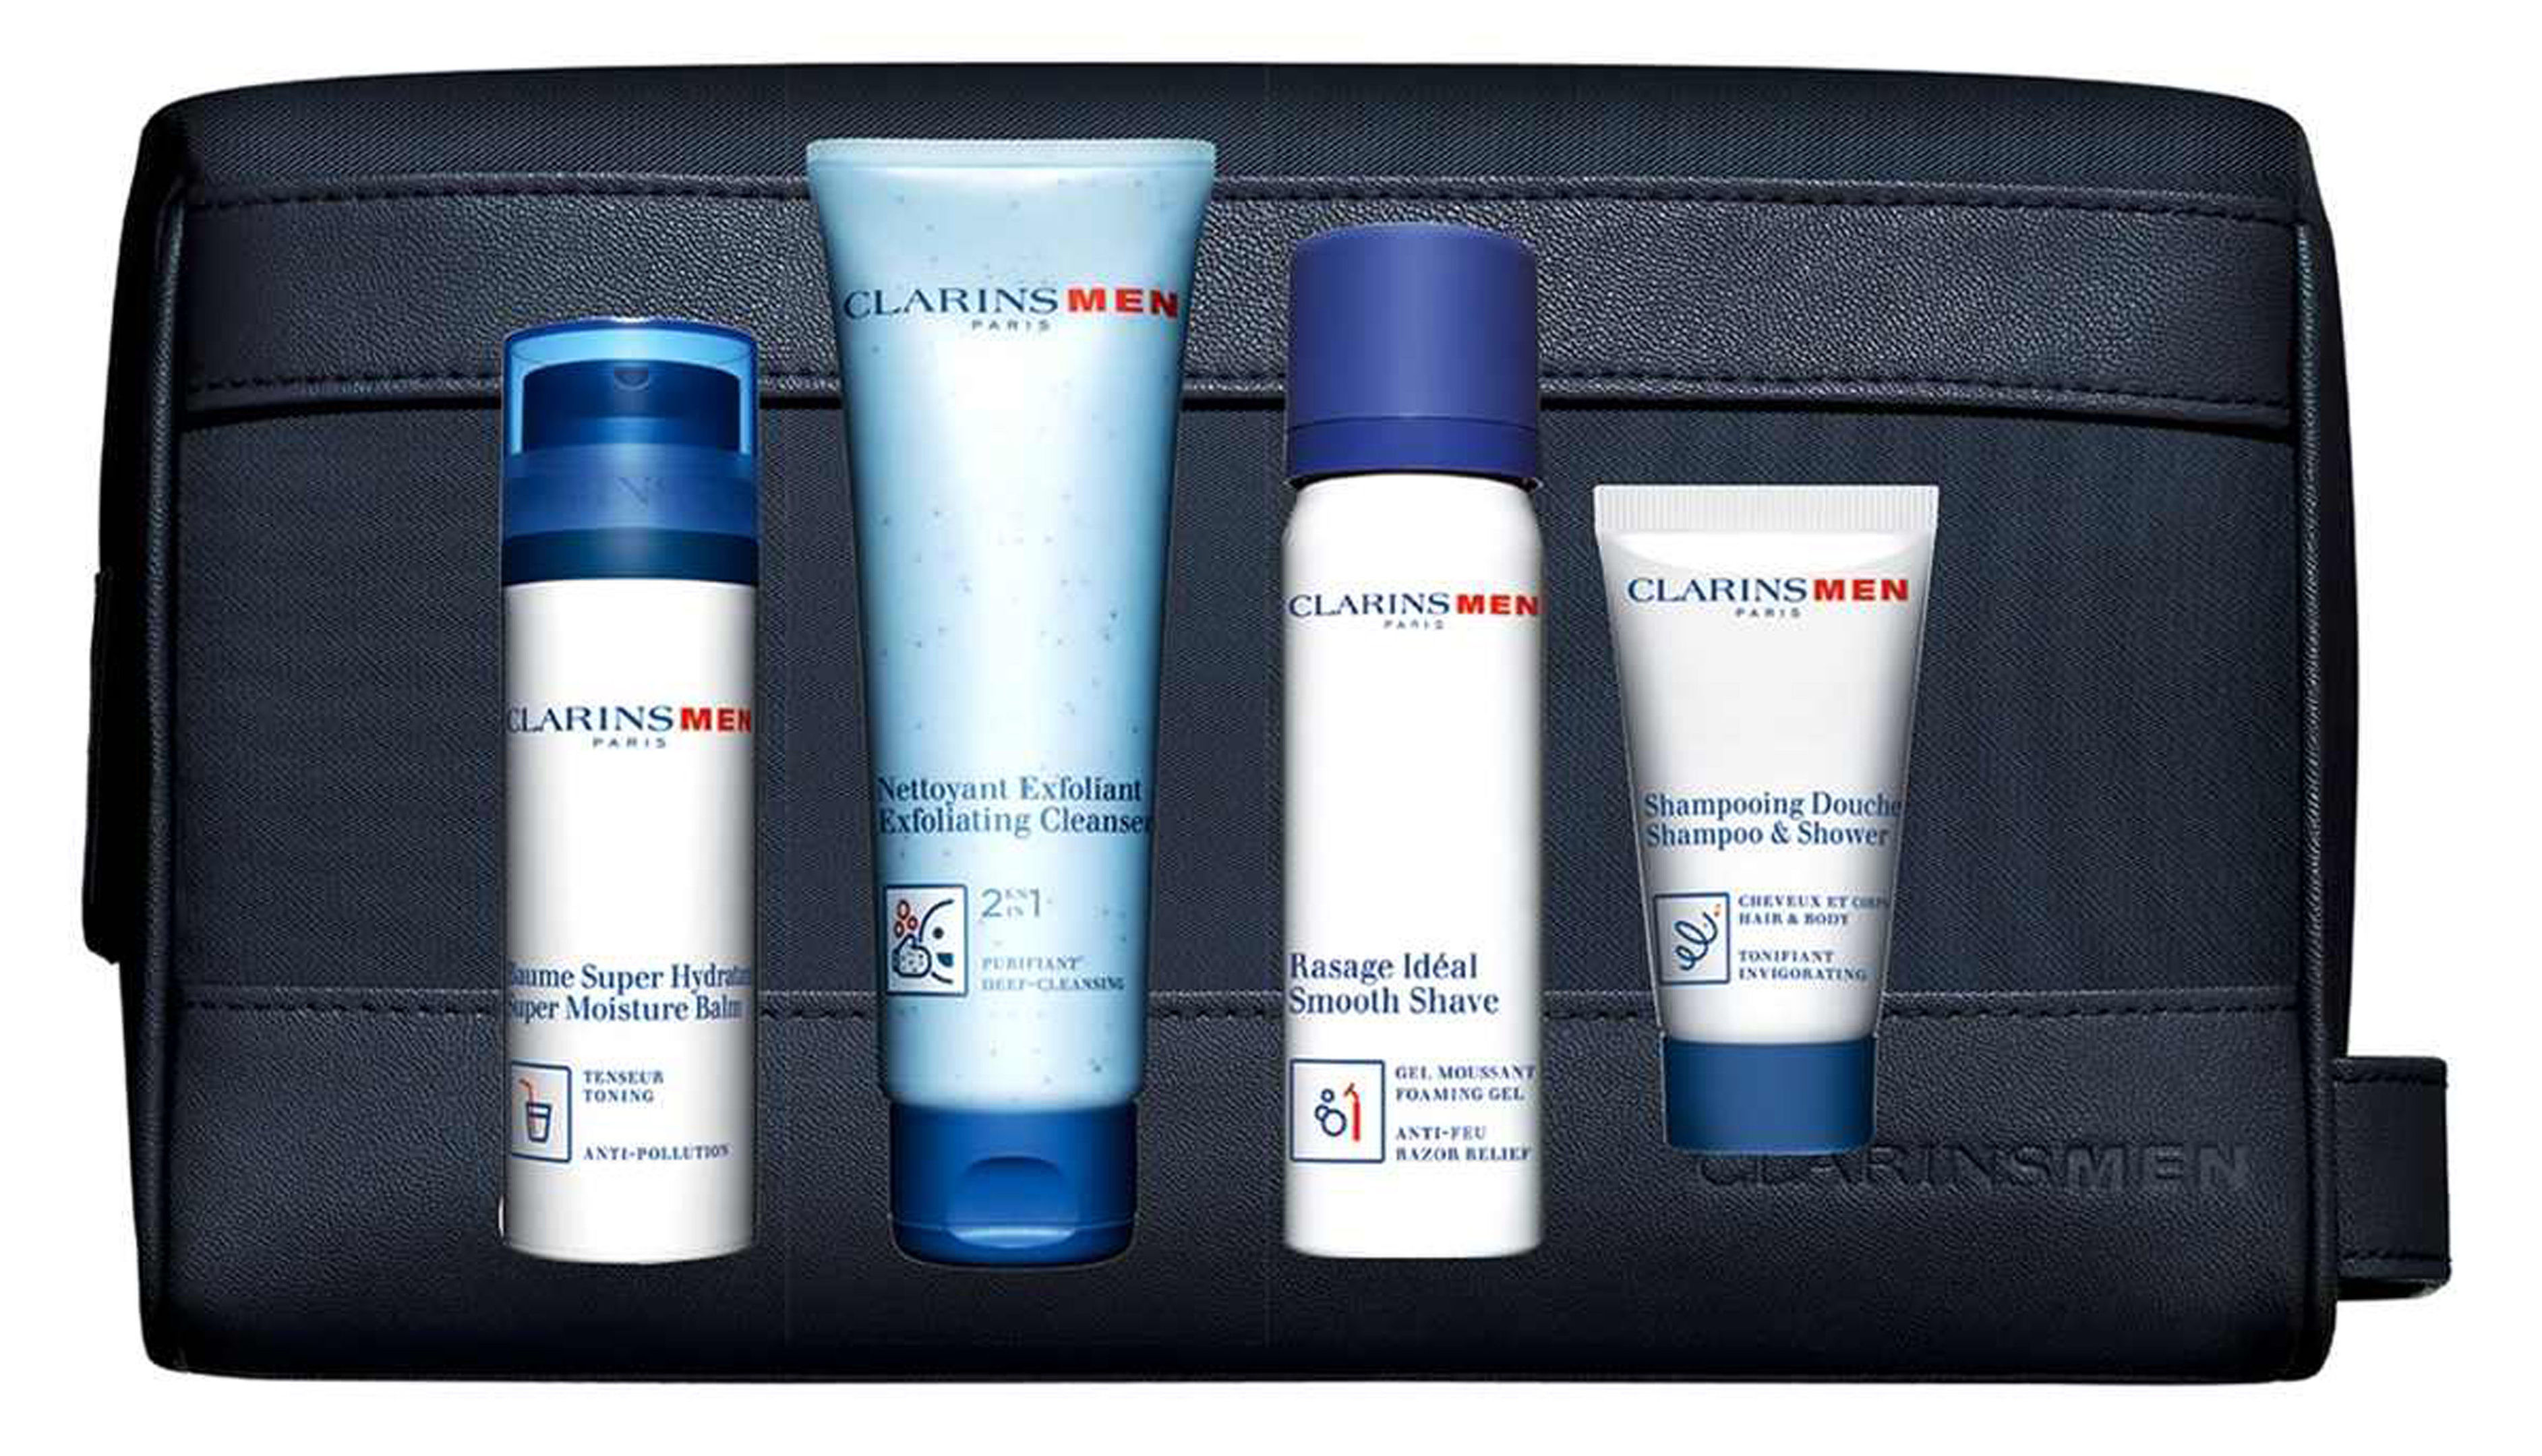 Clarins Grooming Champions Set, available from Boots. Picture credit: PA Photo/Handout.